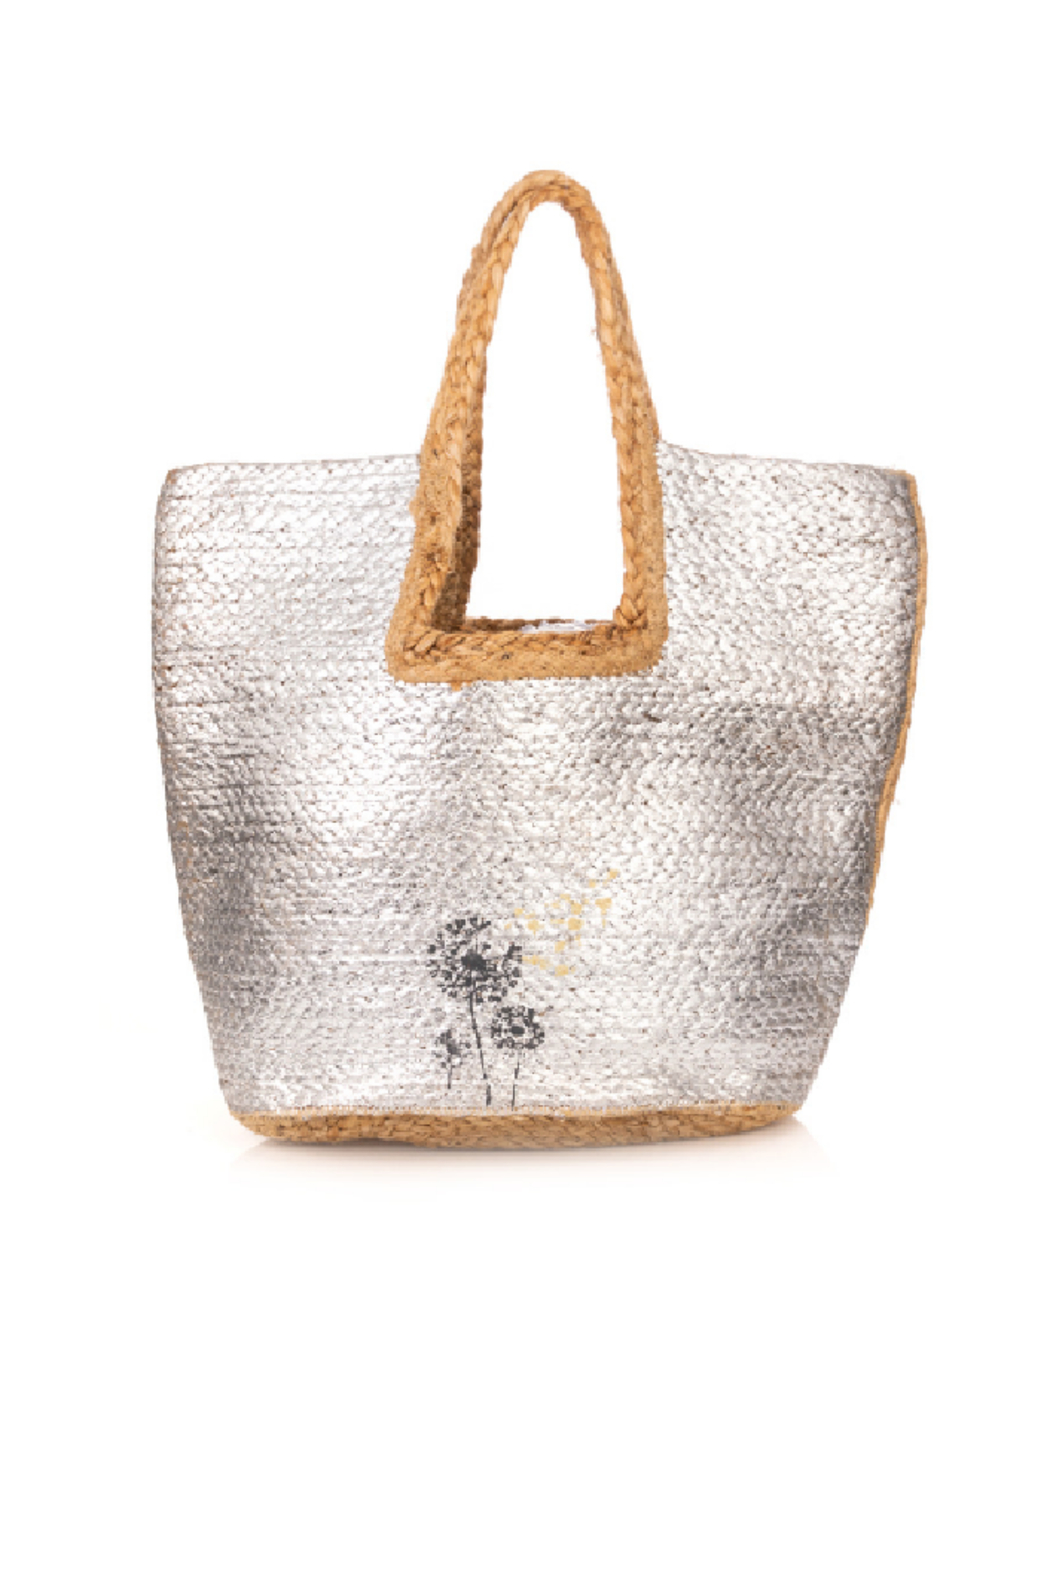 Fame Accessories India Braided Jute Tote - Front Cropped Image